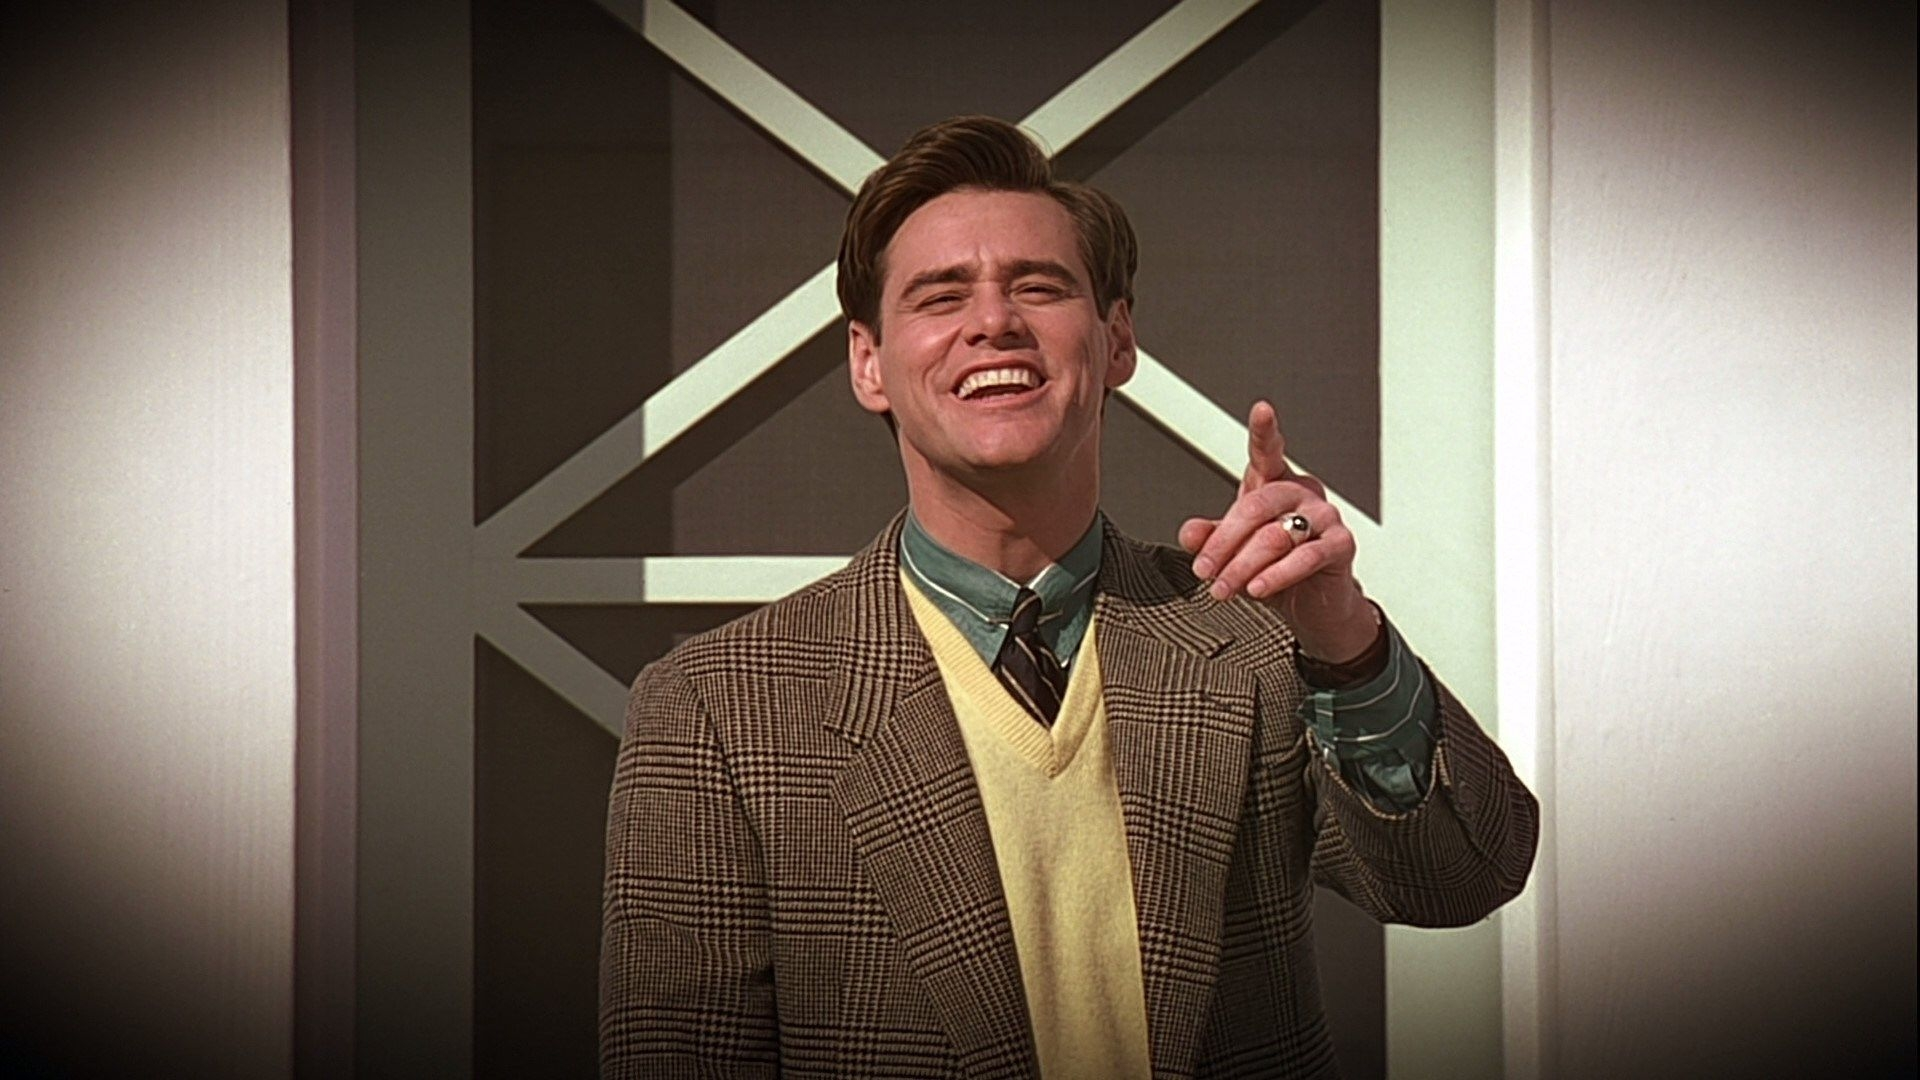 The Truman Show (1998) - Directed by: Peter WeirWritten by: Andrew Niccol